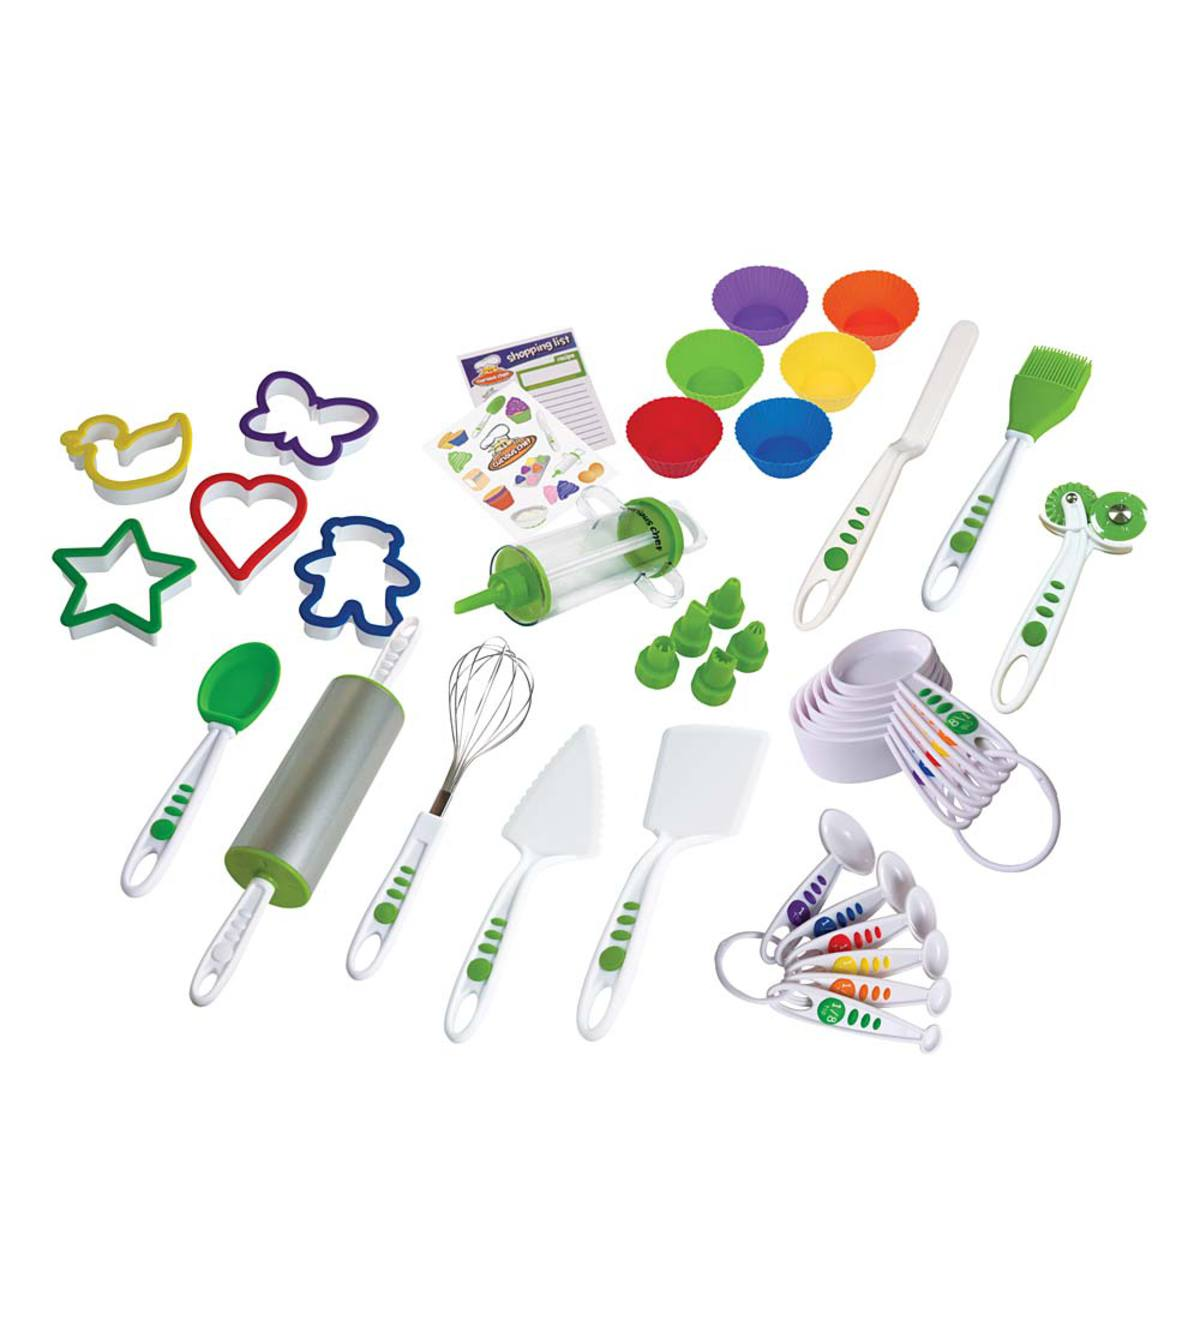 38-Piece Kids' Starter Baking Kit